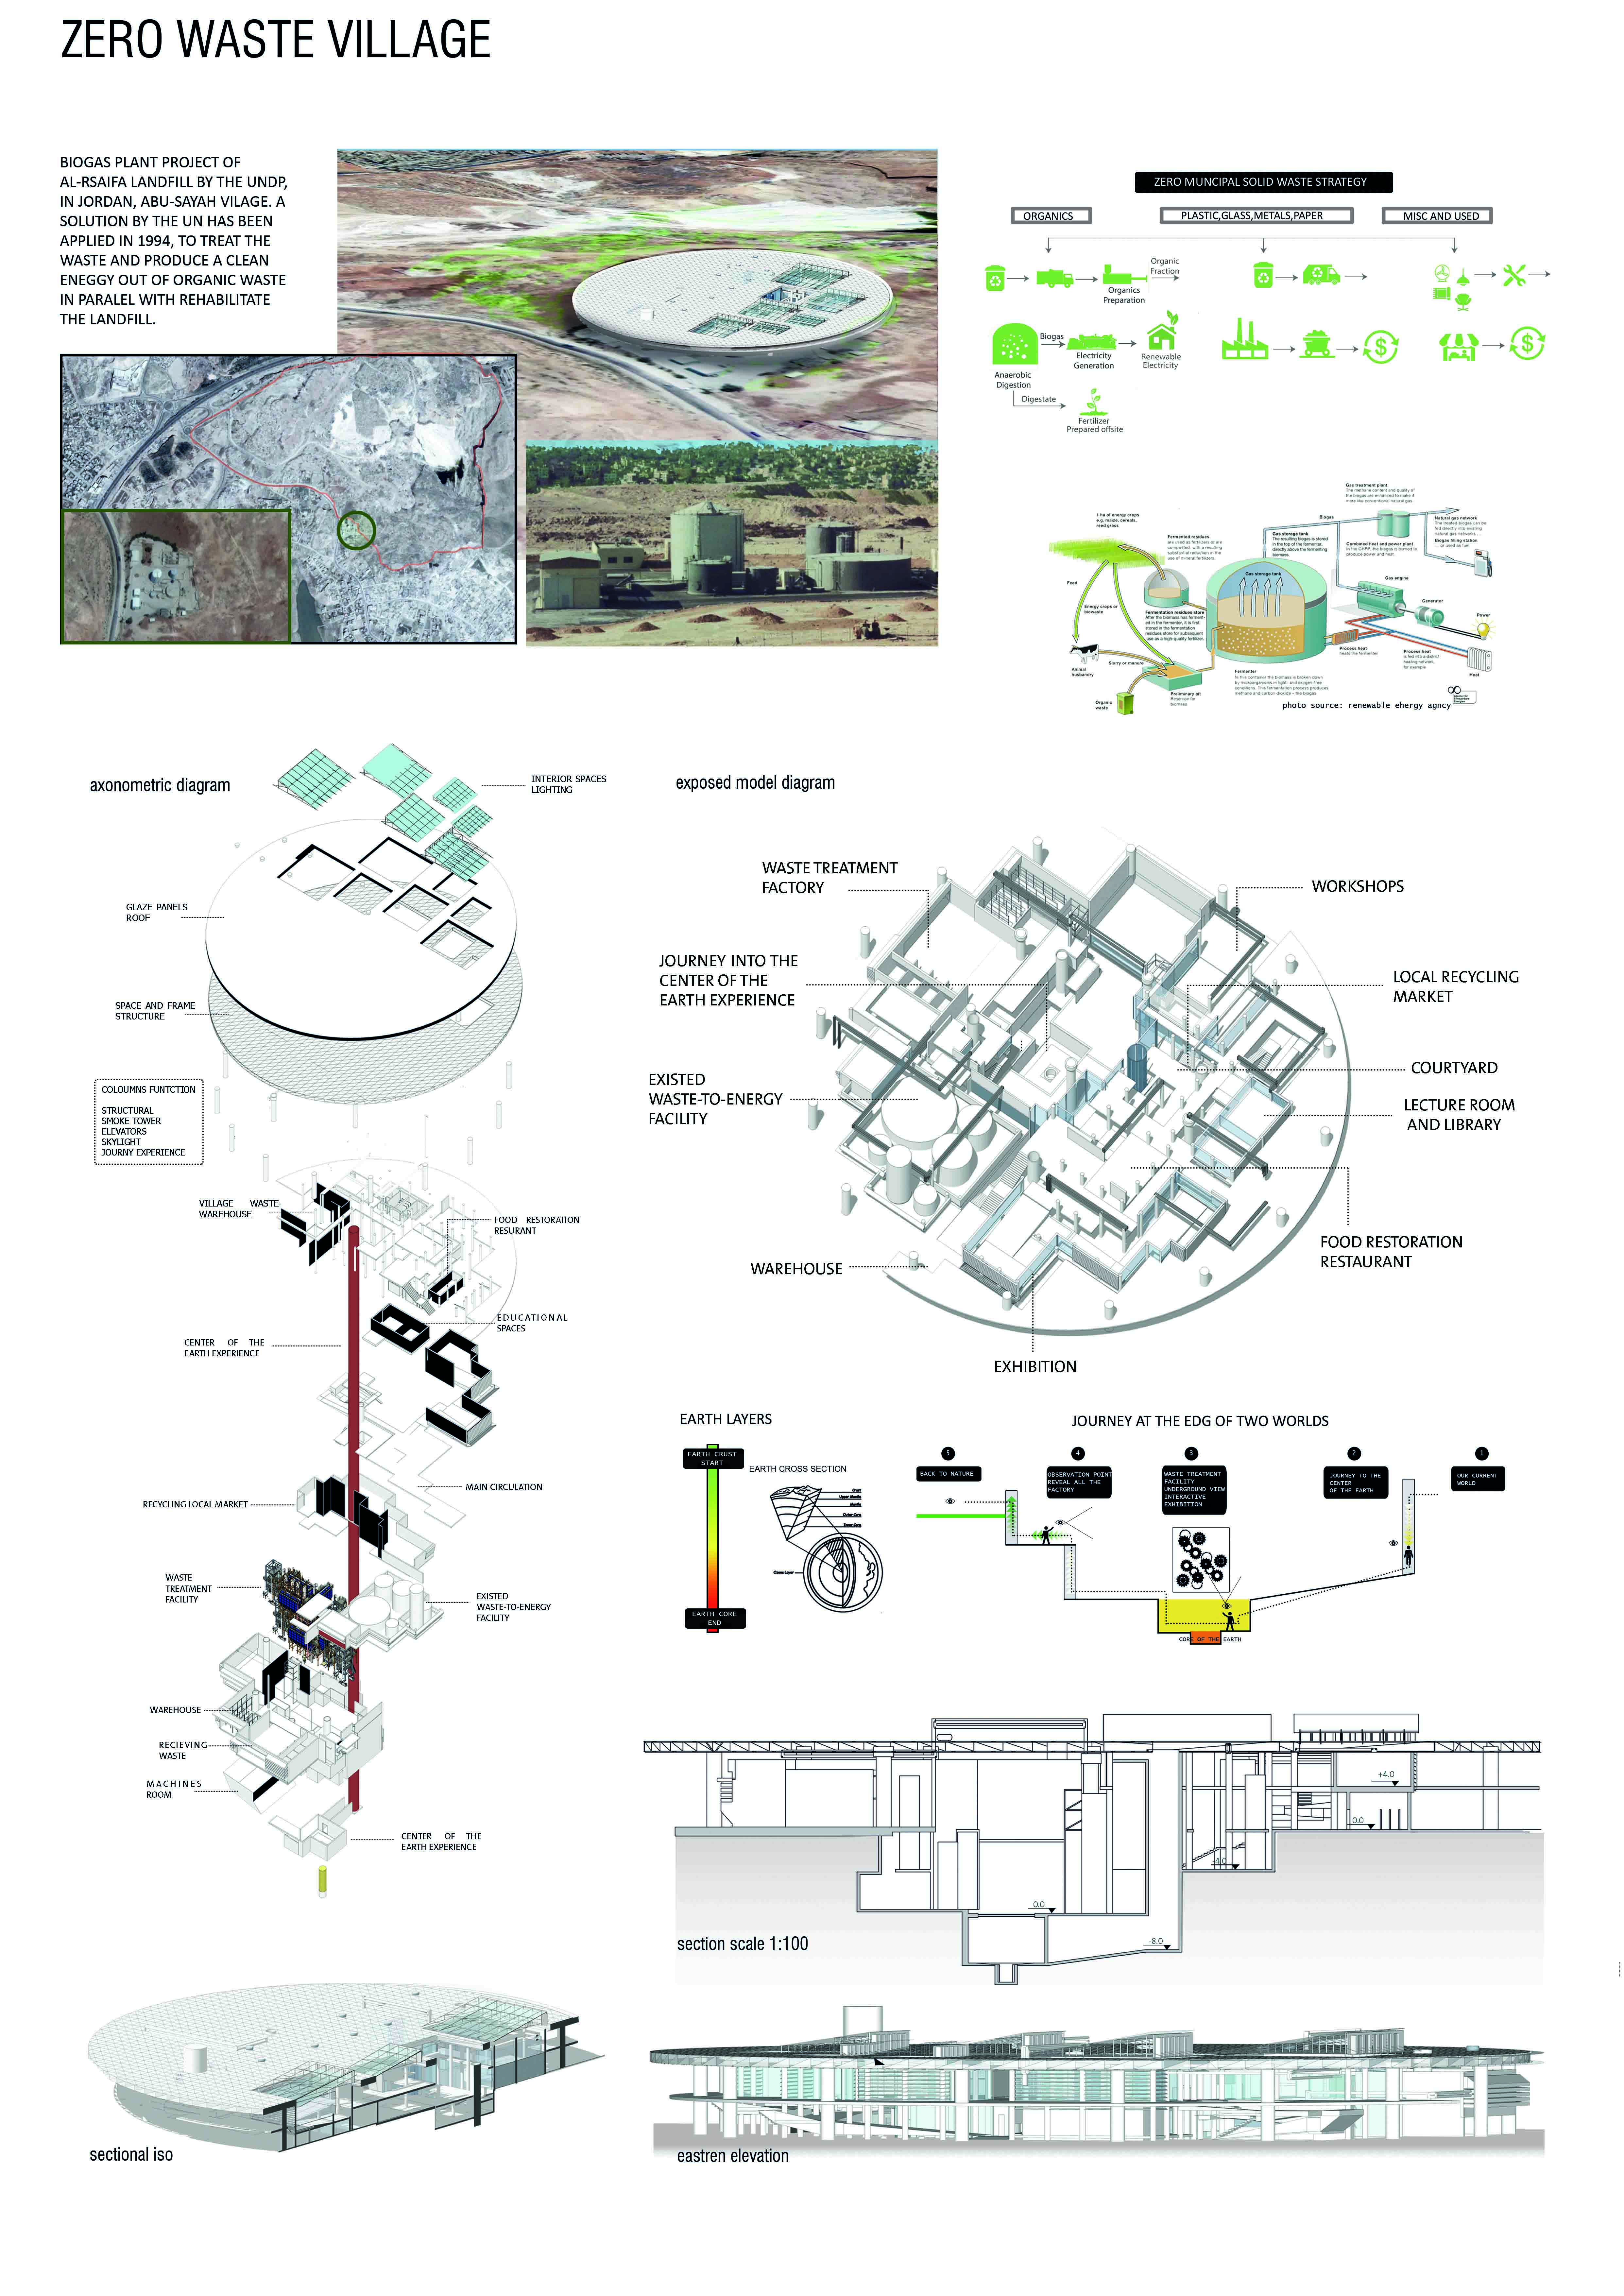 Omrania | CSBE award - Biogas Plant: Zero Waste Project (Project of Merit)